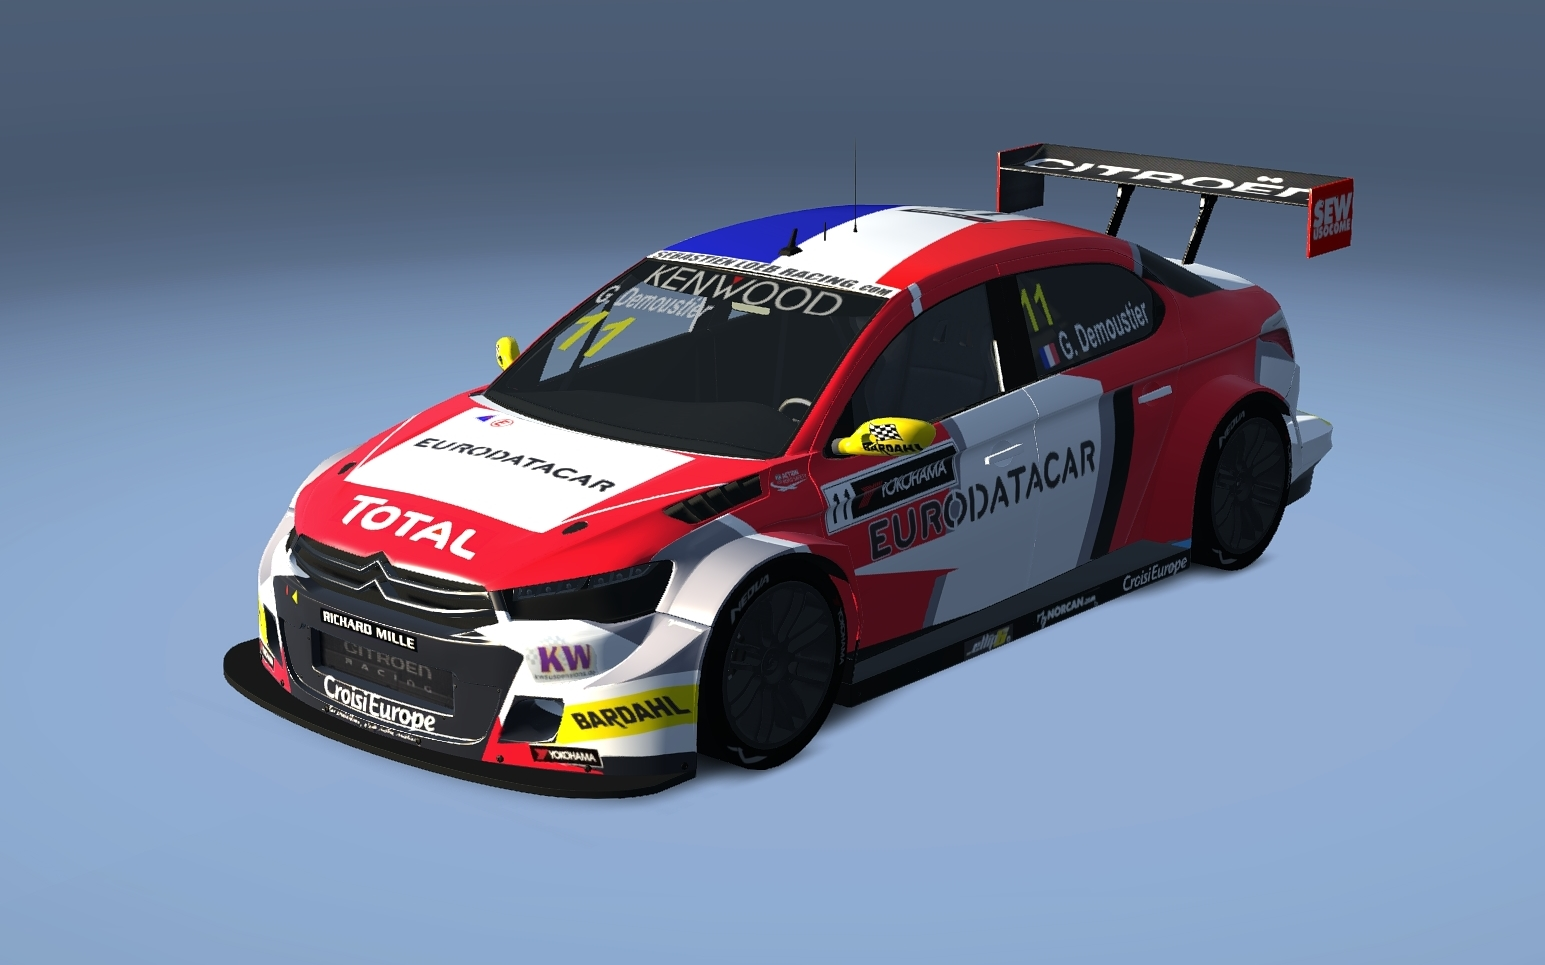 wtcc 2016 citroen c elysee sebastien loeb racing 3 11 25 racedepartment. Black Bedroom Furniture Sets. Home Design Ideas